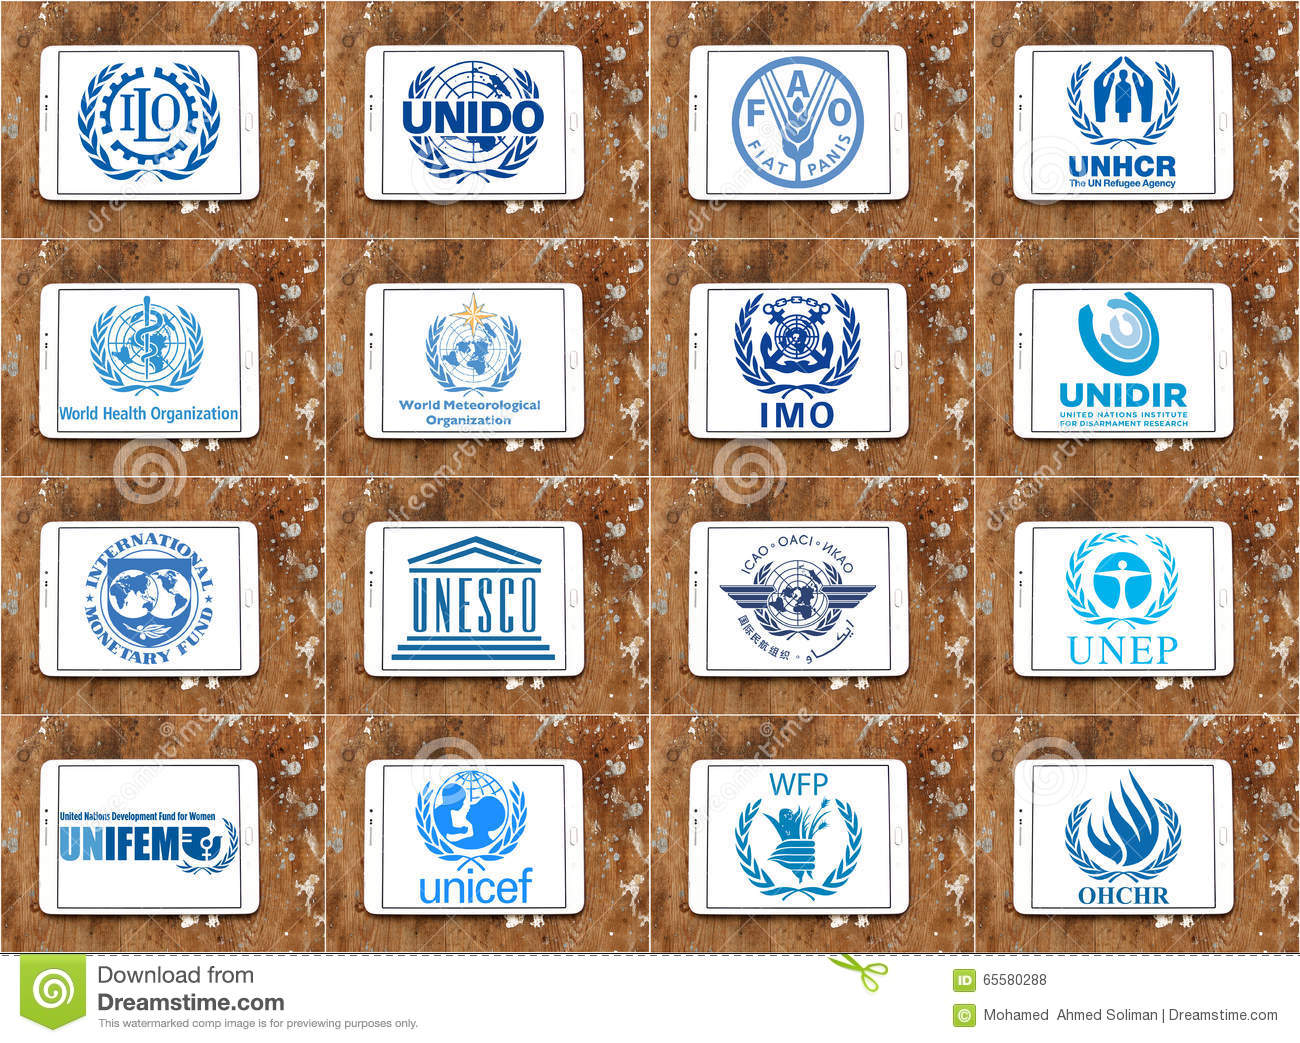 United Nations Agencies Logos Stock Images - Download 6 ...